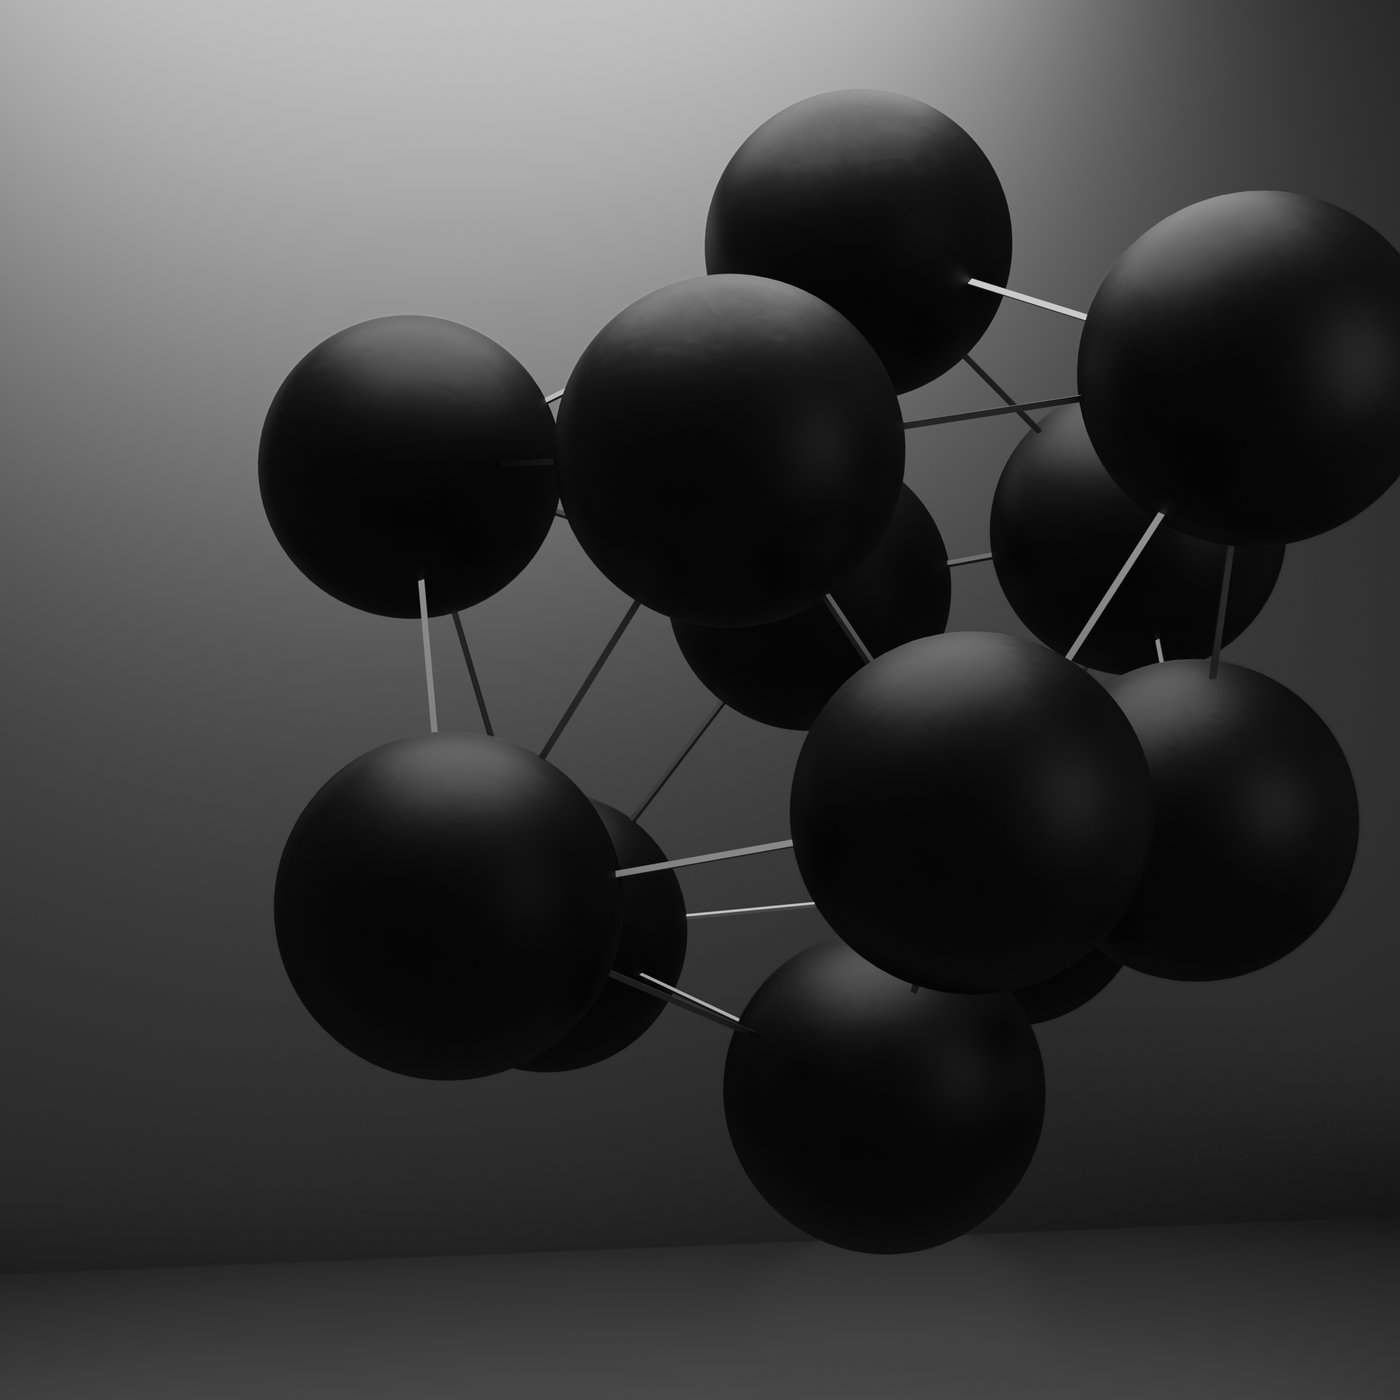 Black balloons background